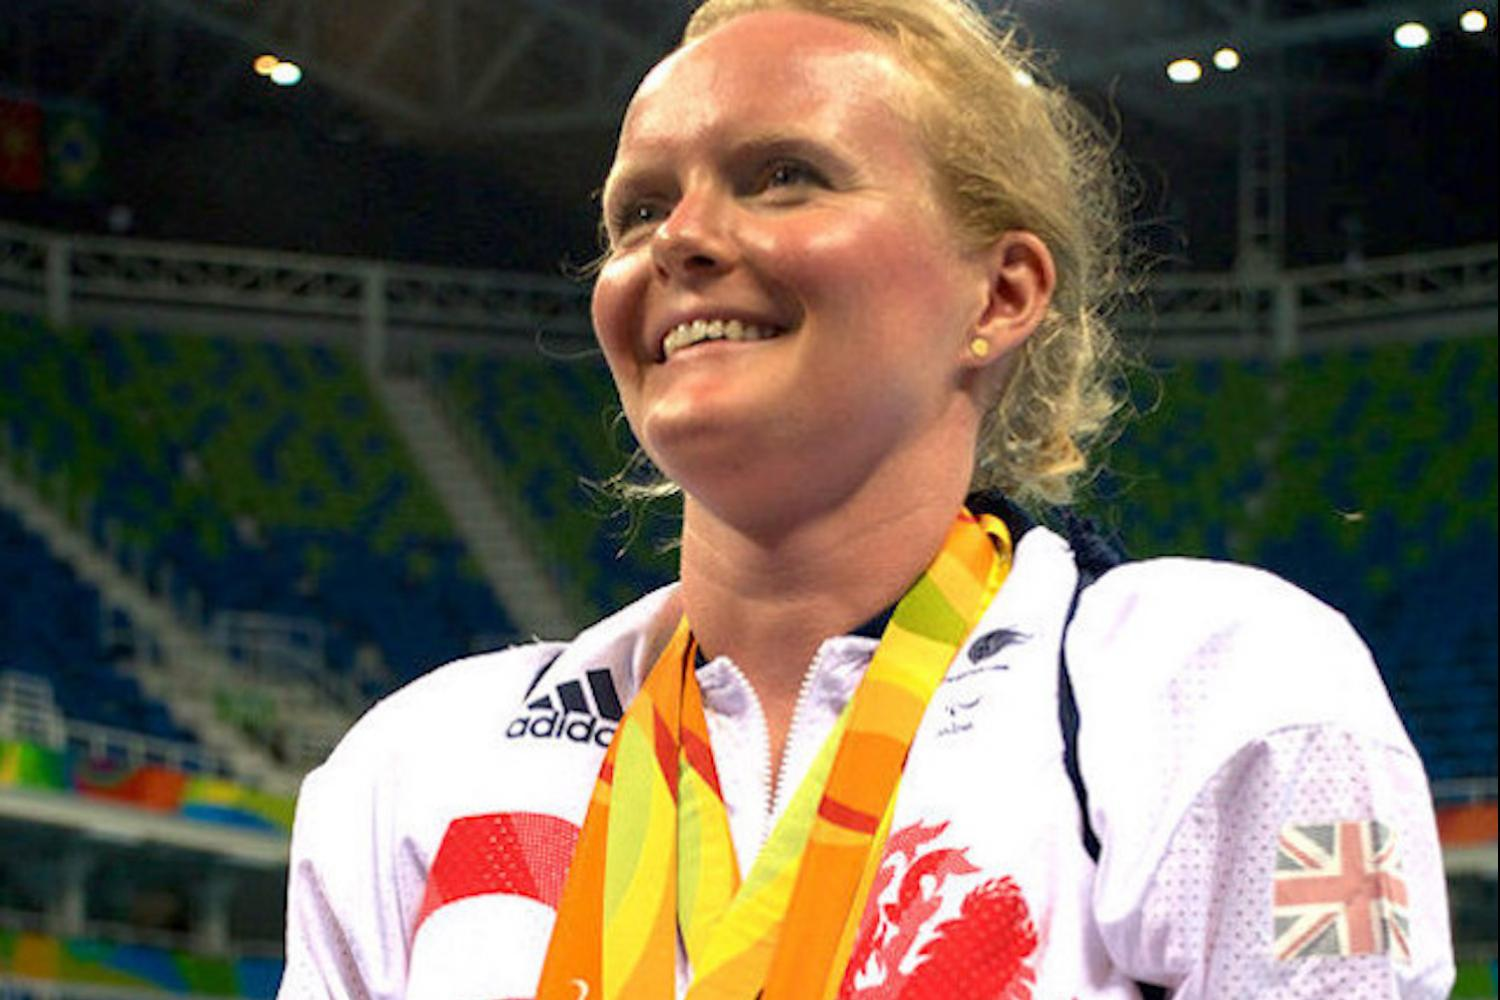 #MyStory - Susie Rodgers GB Paralympian supporting Disability Sports Coach campaign